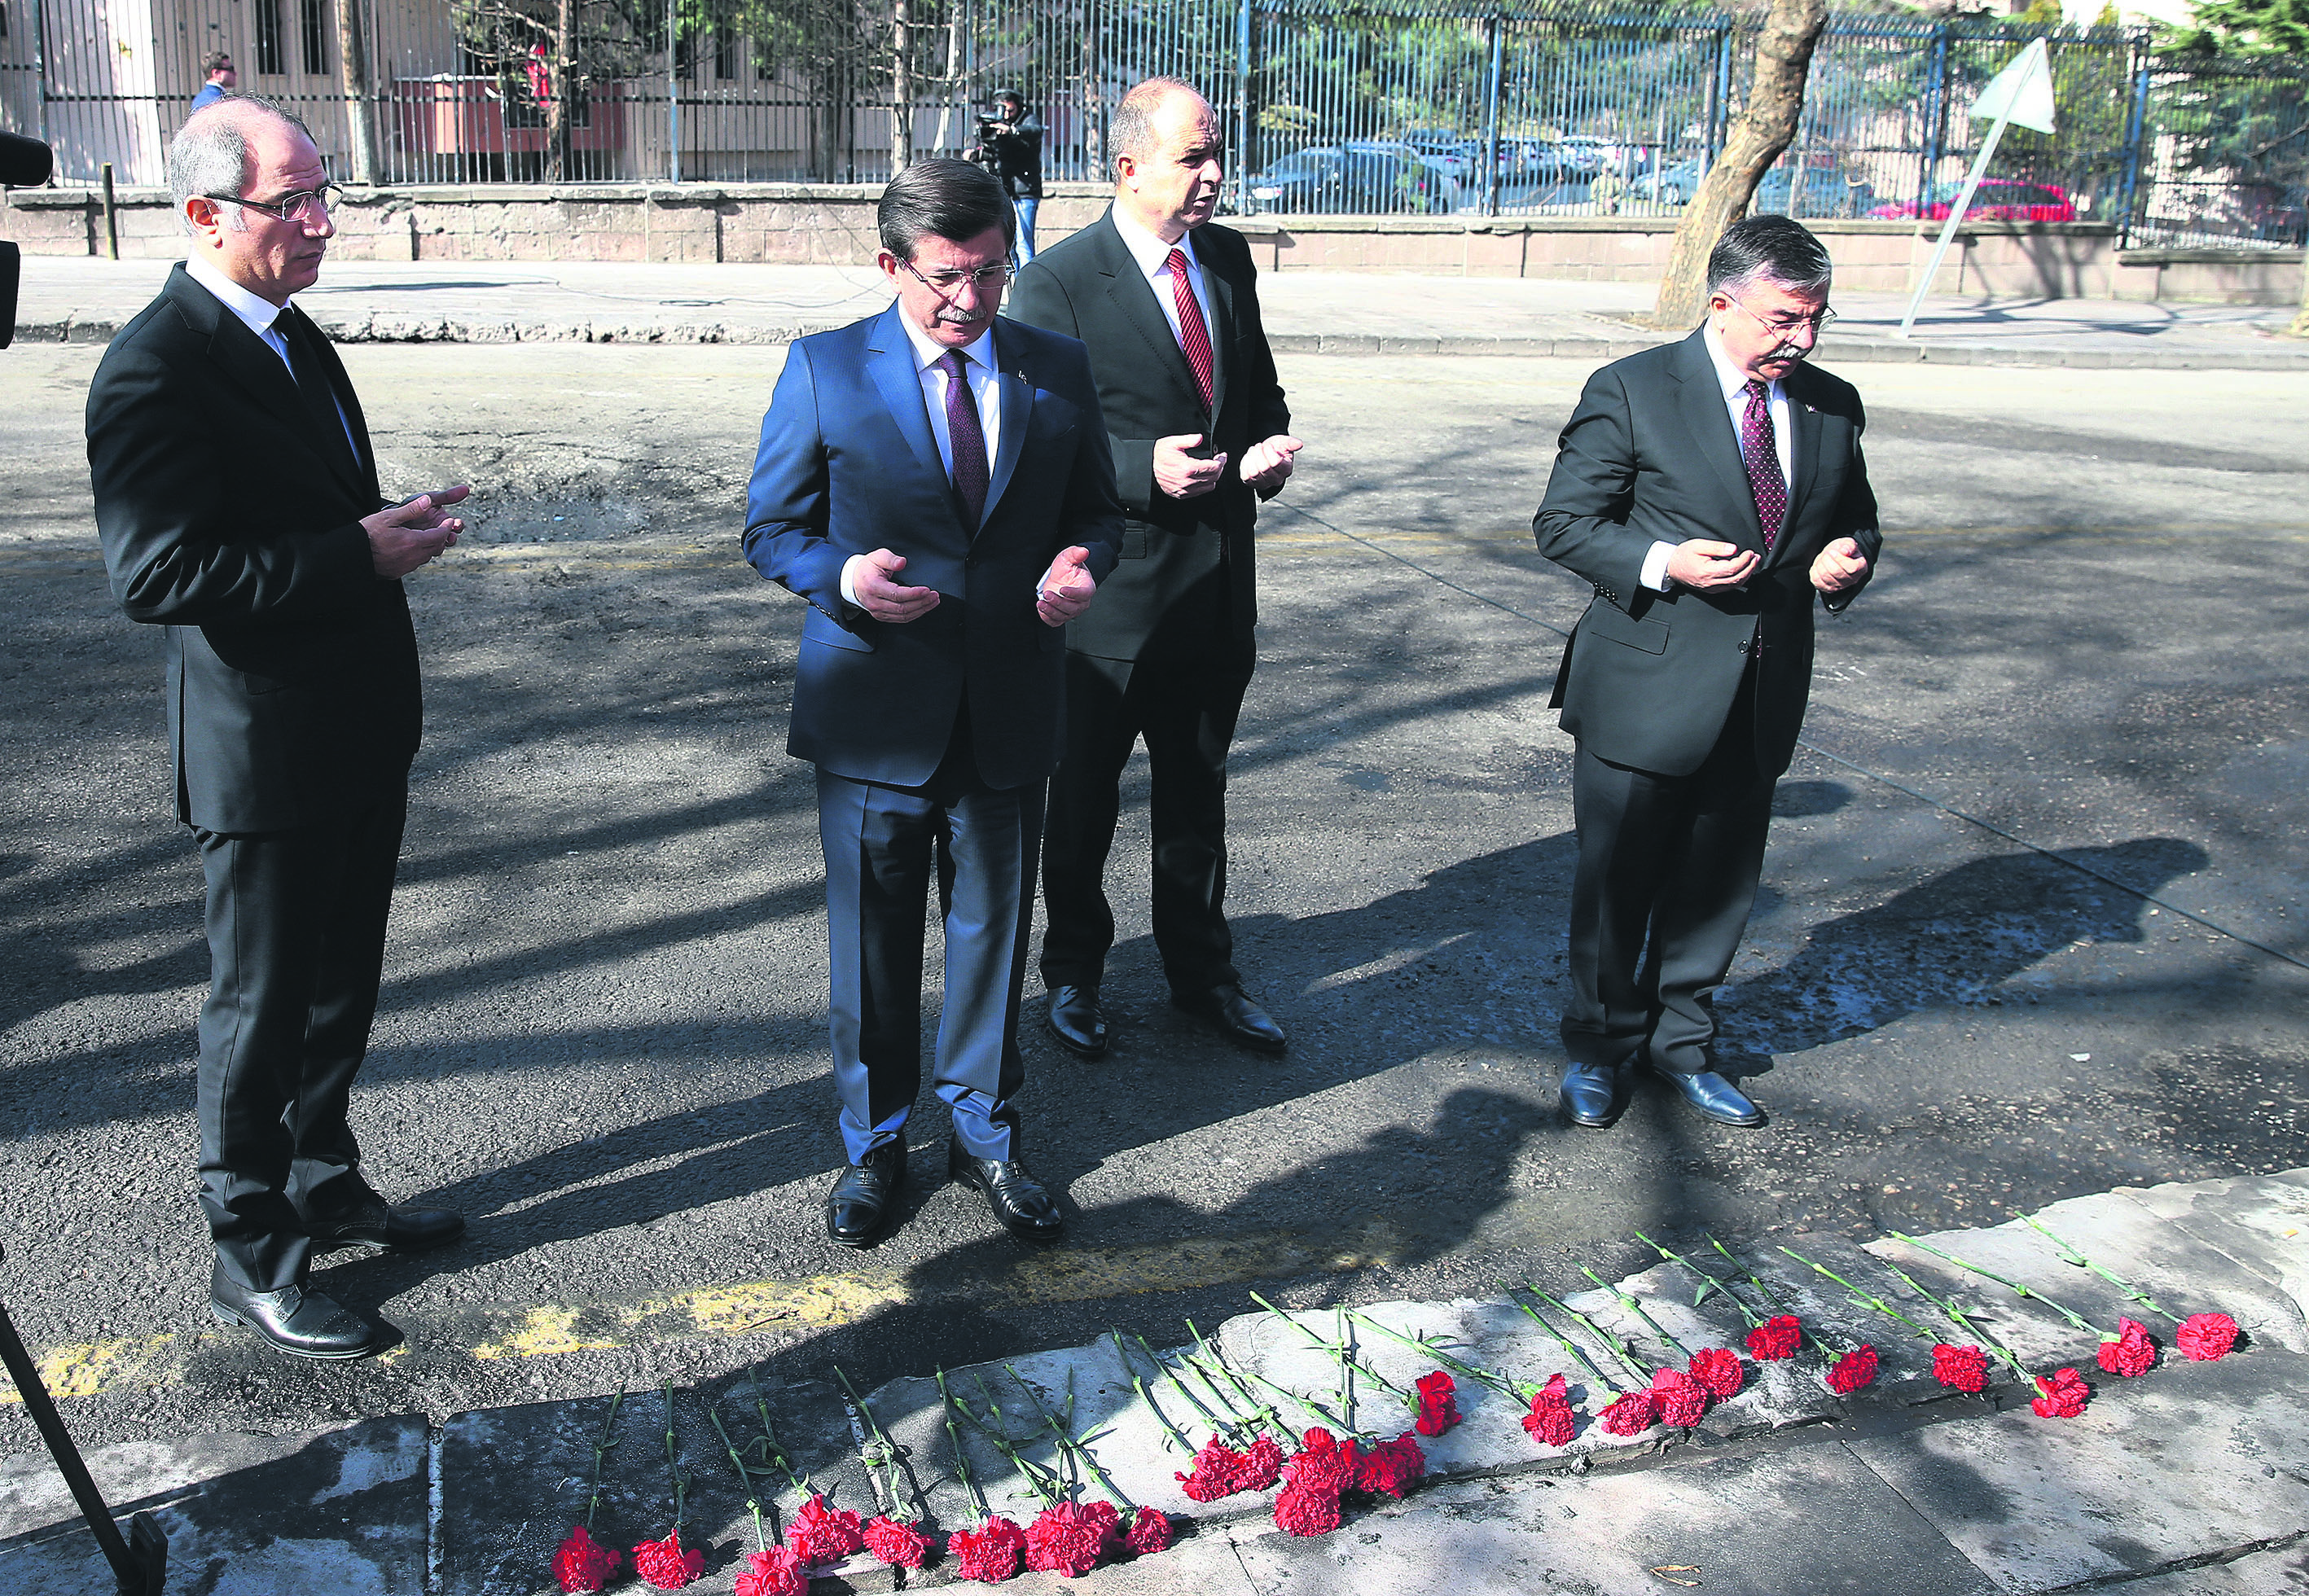 Prime Minister Ahmet Davutoğlu (C-L) and Cabinet ministers at the site of the blast on Friday where they paid tribute to the victims and laid carnations. (AA Photo)